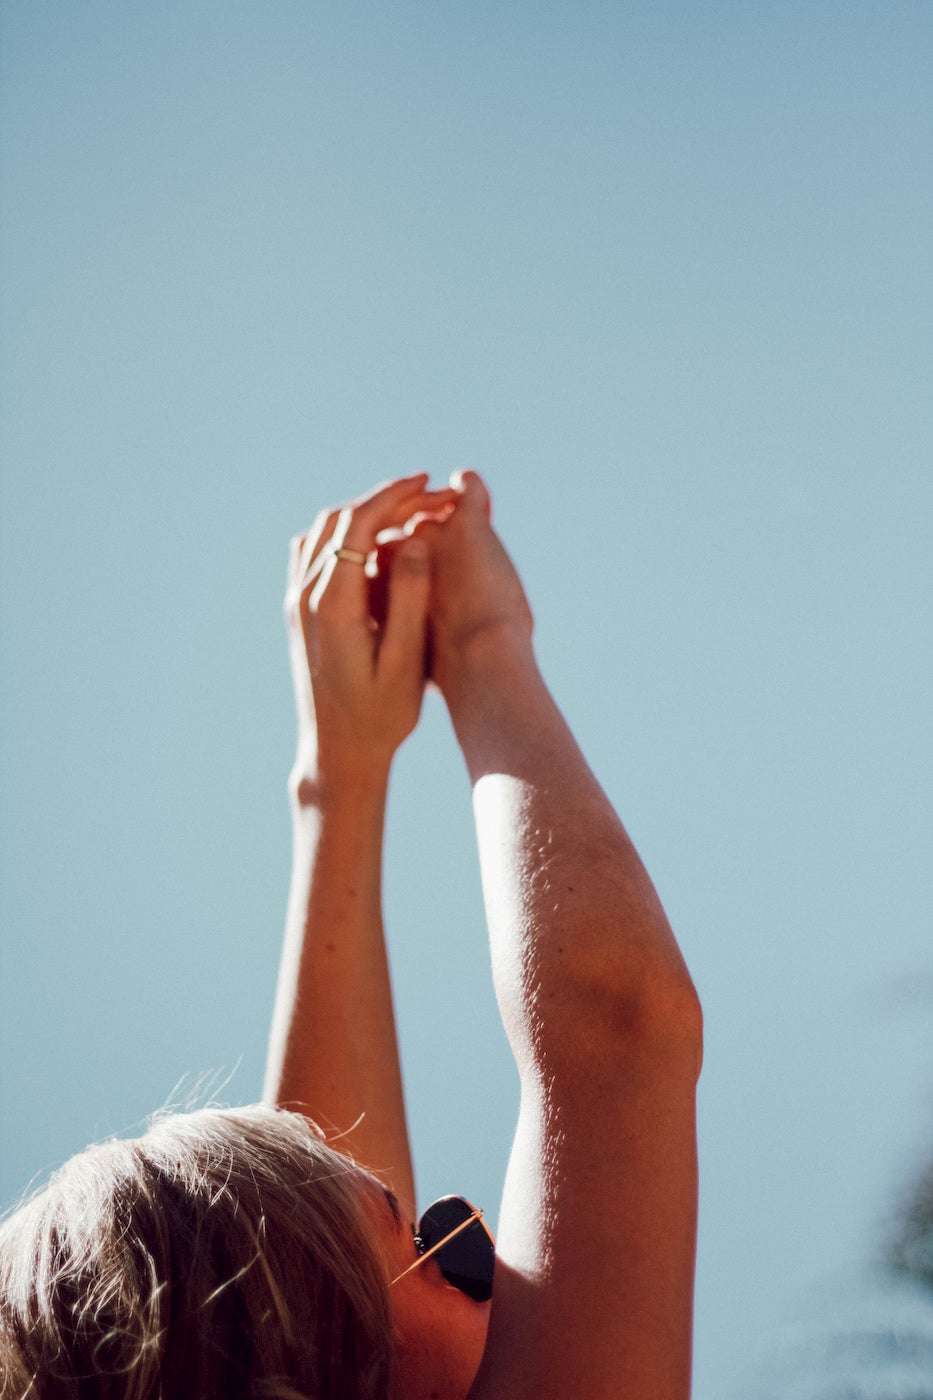 Women stretching her hands up towards the sky on a sunny day.